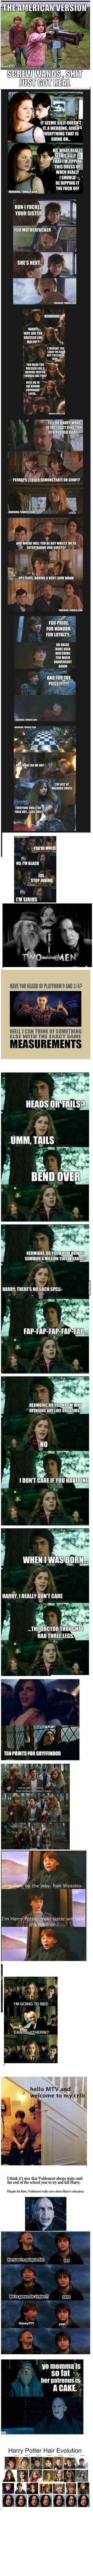 49 super ideas for funny memes humor dirty harry potter Harry Potter Jokes, Harry Potter Fandom, Superwholock, Figurine Harry Potter, Harry Potter Universal, Geek Culture, Fantastic Beasts, Hogwarts, Slytherin